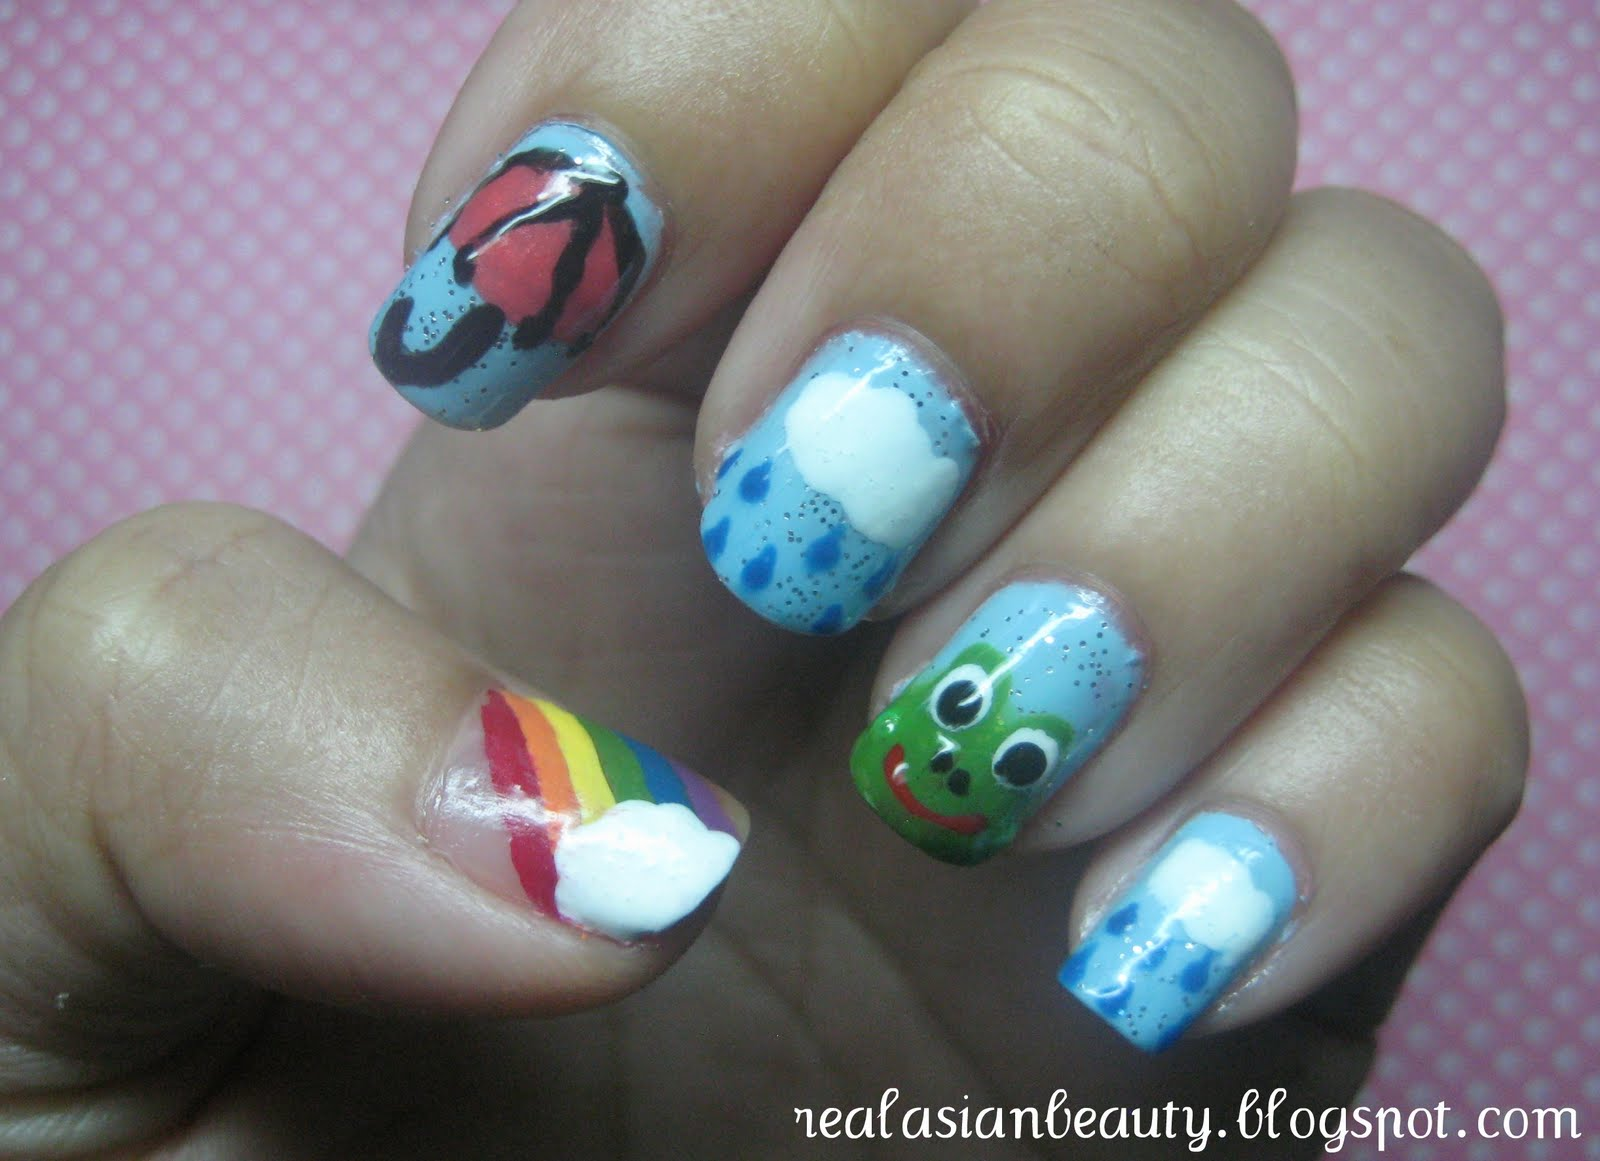 Real Asian Beauty: Rainy Day Nail Art (Raindrops and Frog) Tutorial